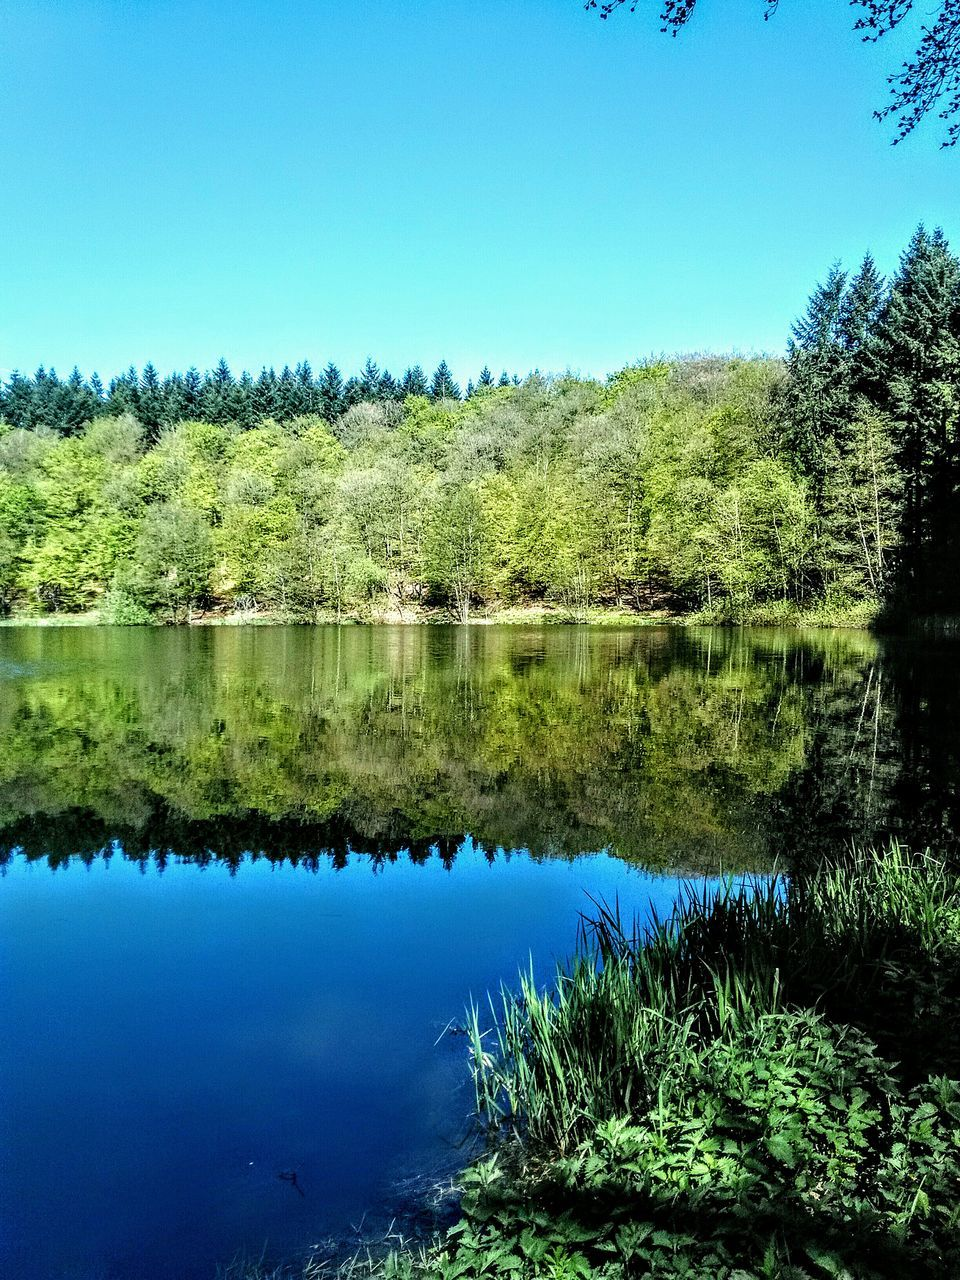 reflection, lake, water, nature, day, tree, clear sky, forest, beauty in nature, outdoors, no people